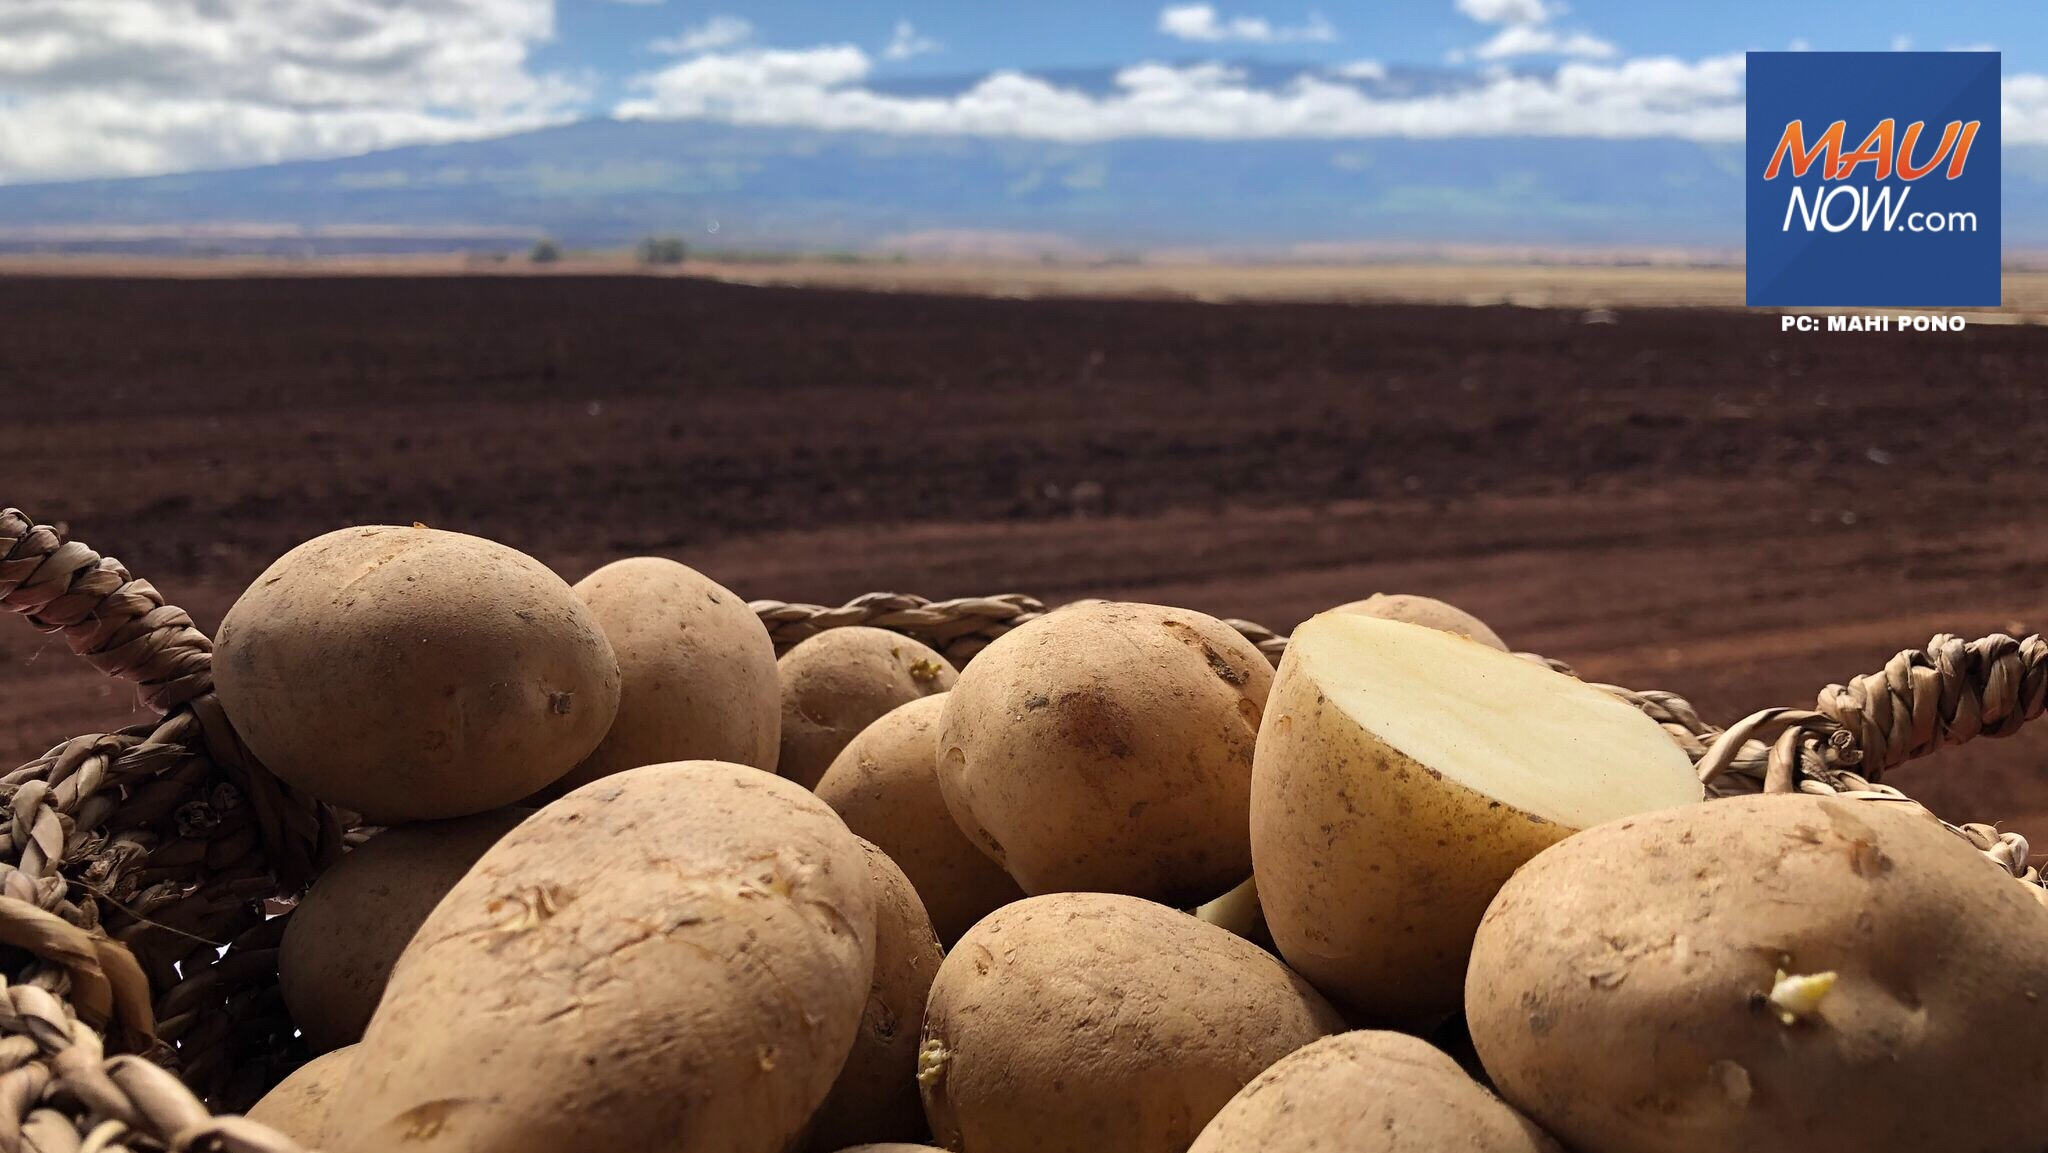 Mahi Pono Potatoes to Debut at Hawai'i Food & Wine Festival on Maui